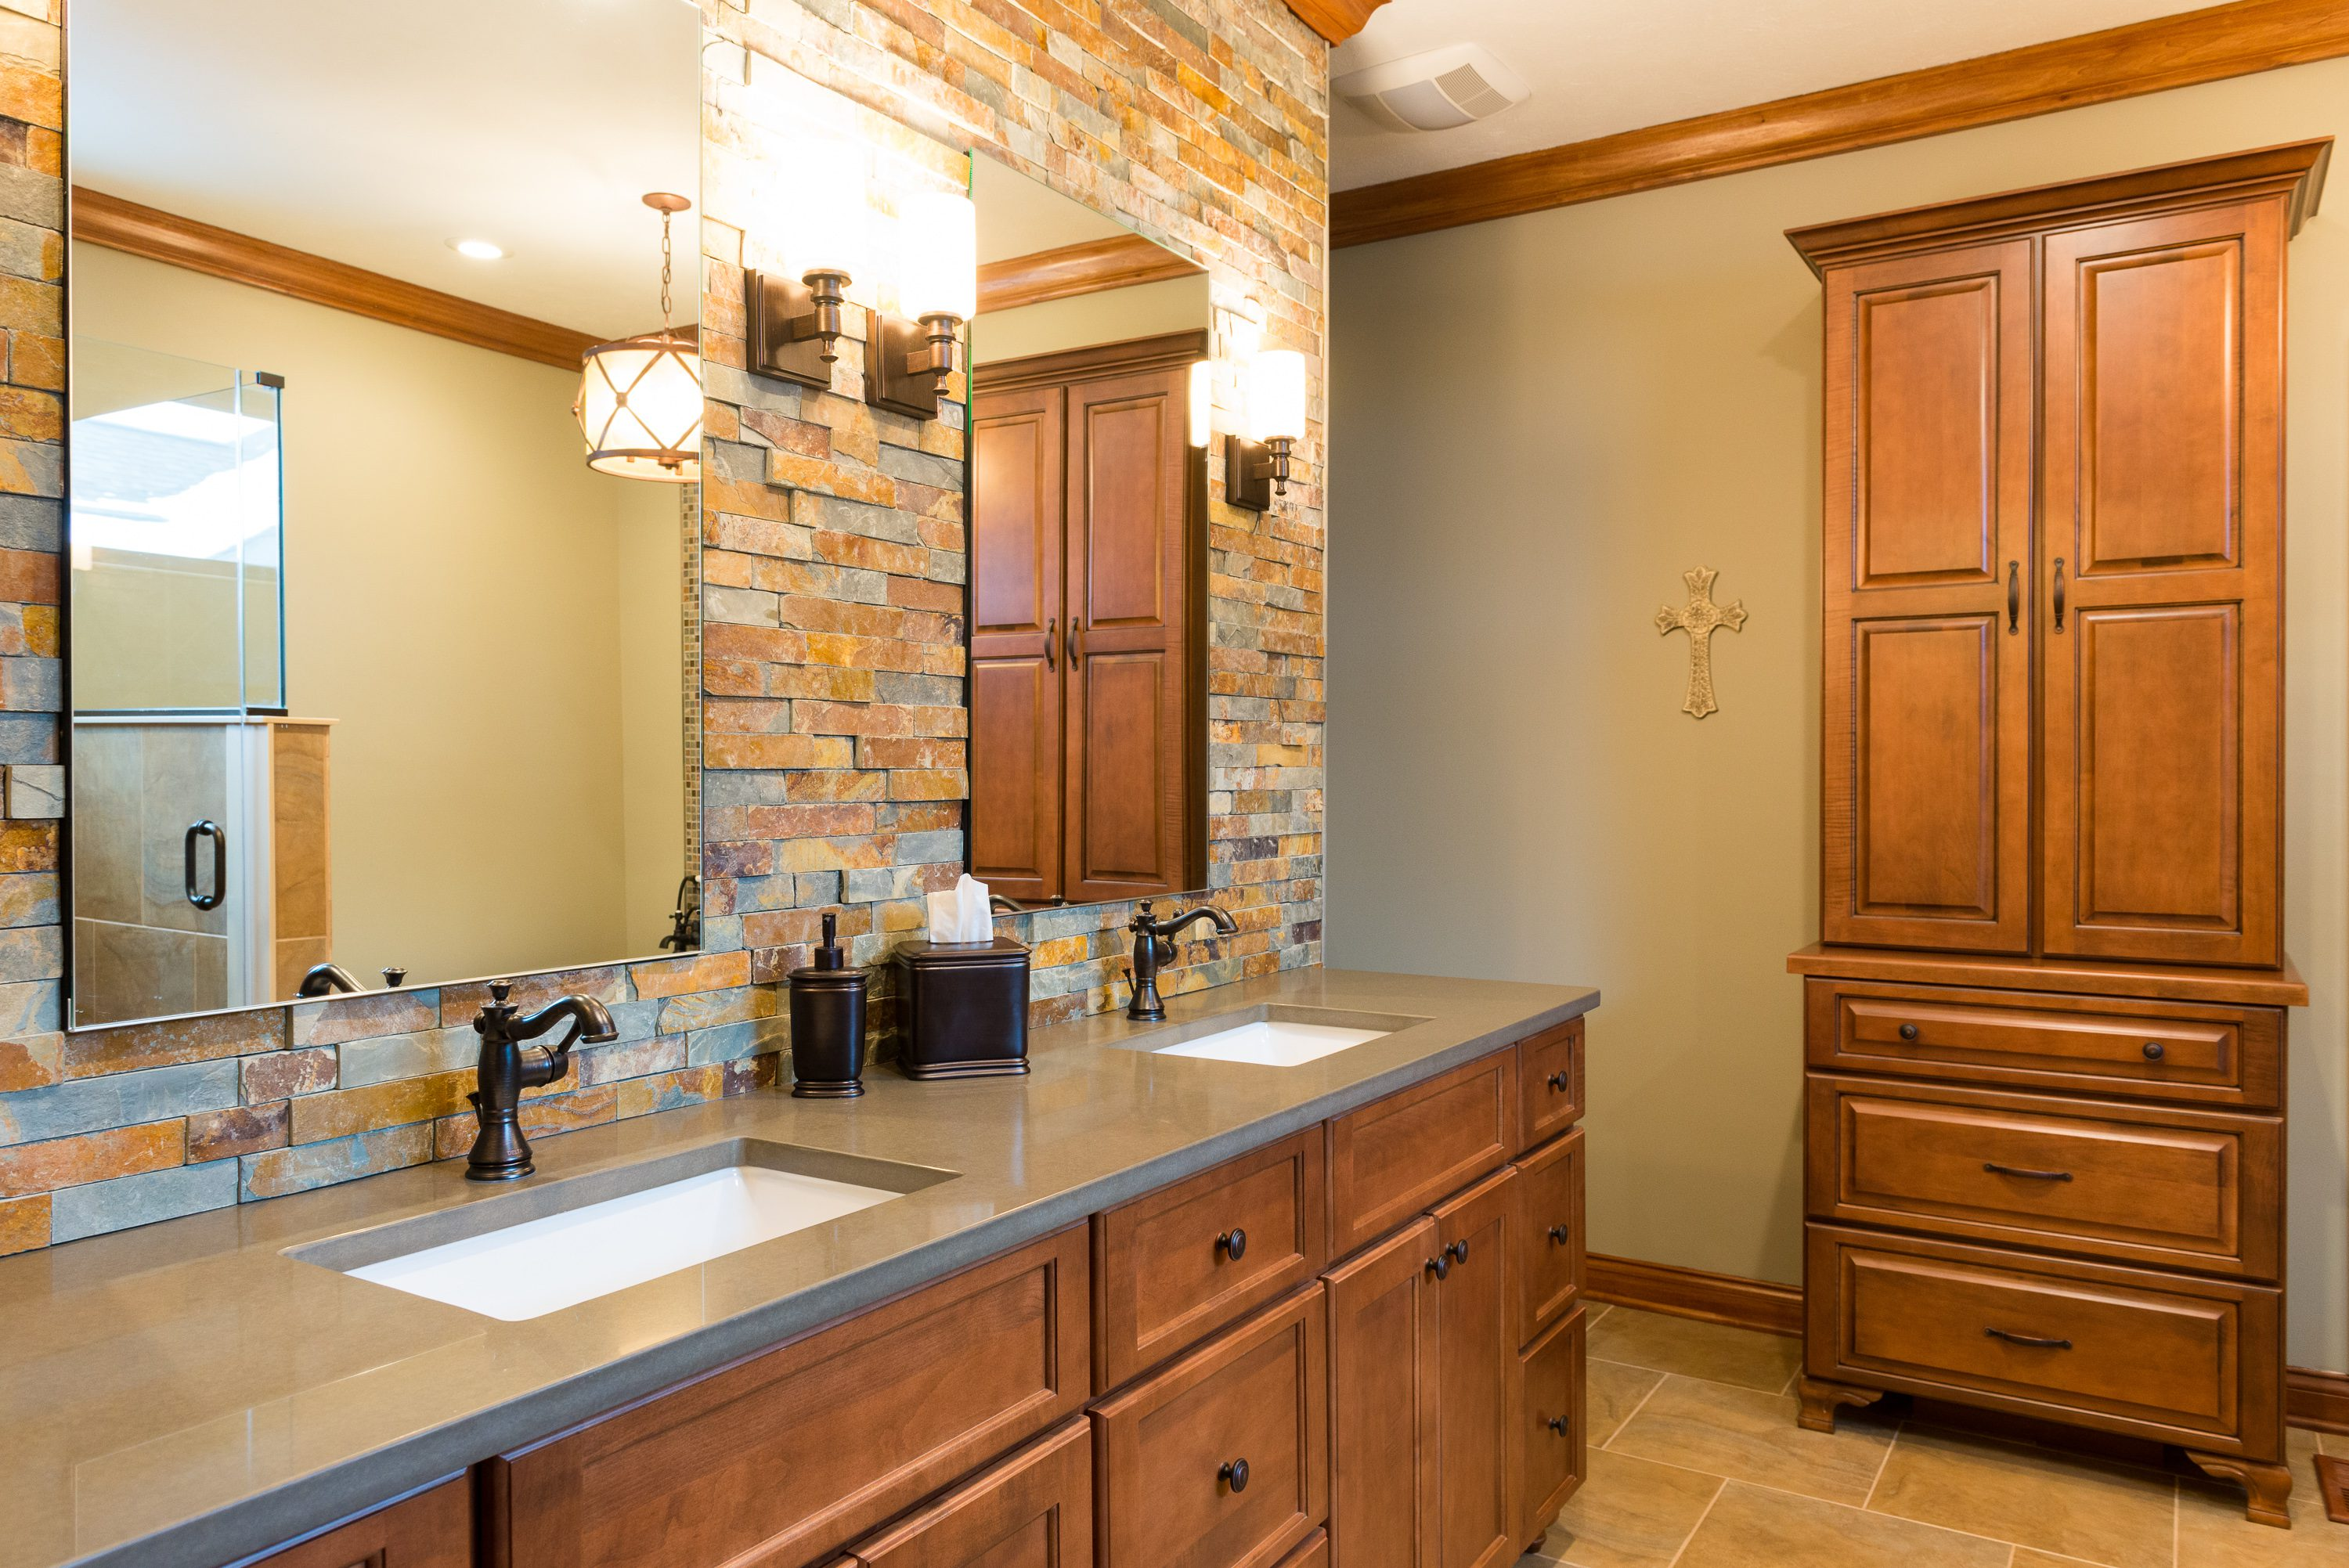 Re Tile Bathroom 8 Swoon Worthy Bathrooms To Inspire Your Next Remodel Case Indy